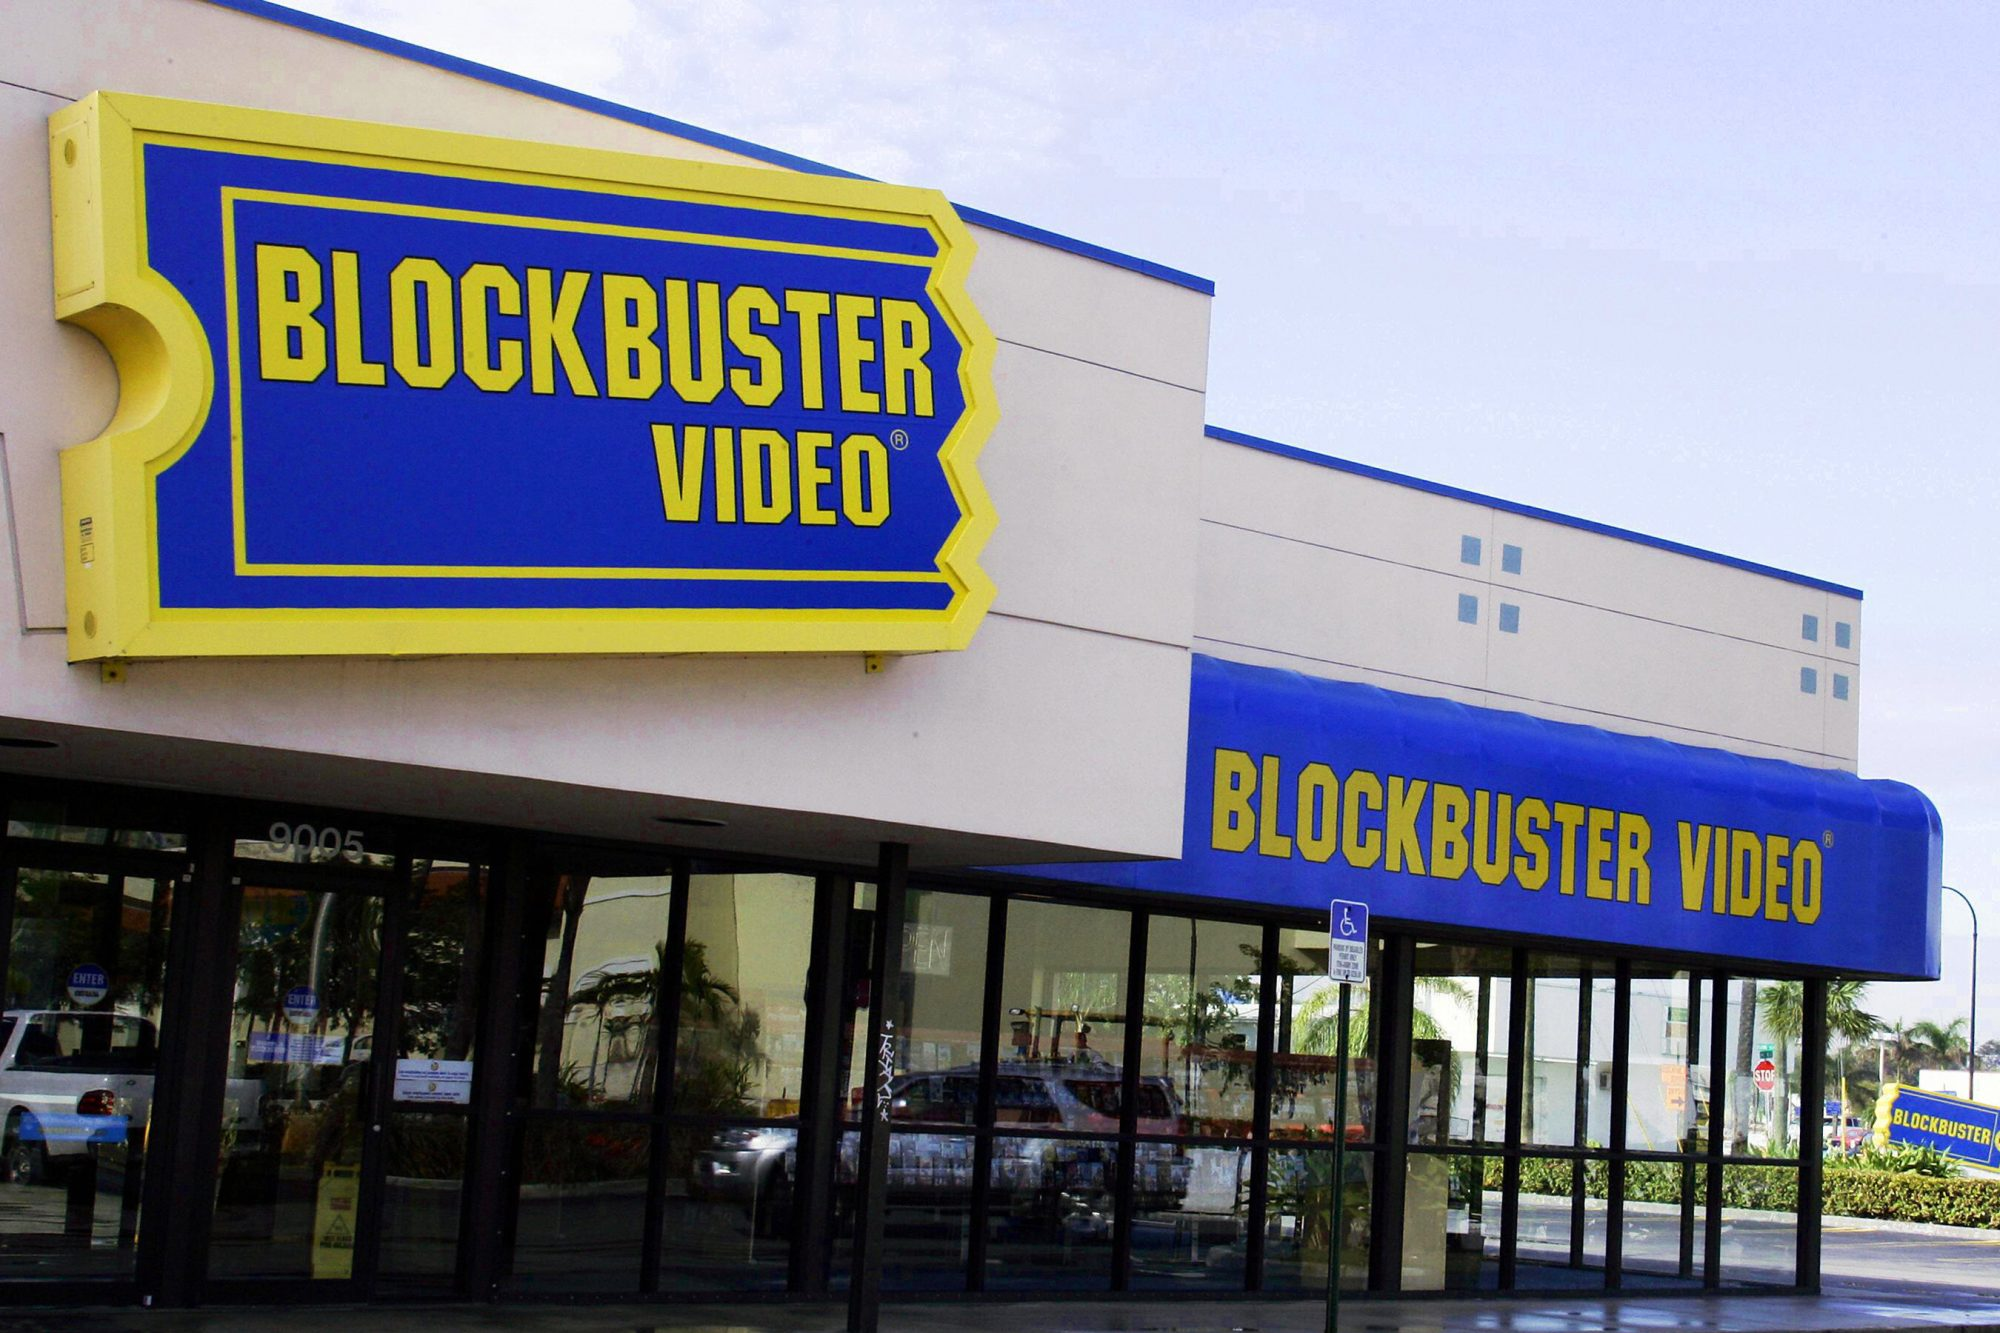 A Blockbuster video rental store is show